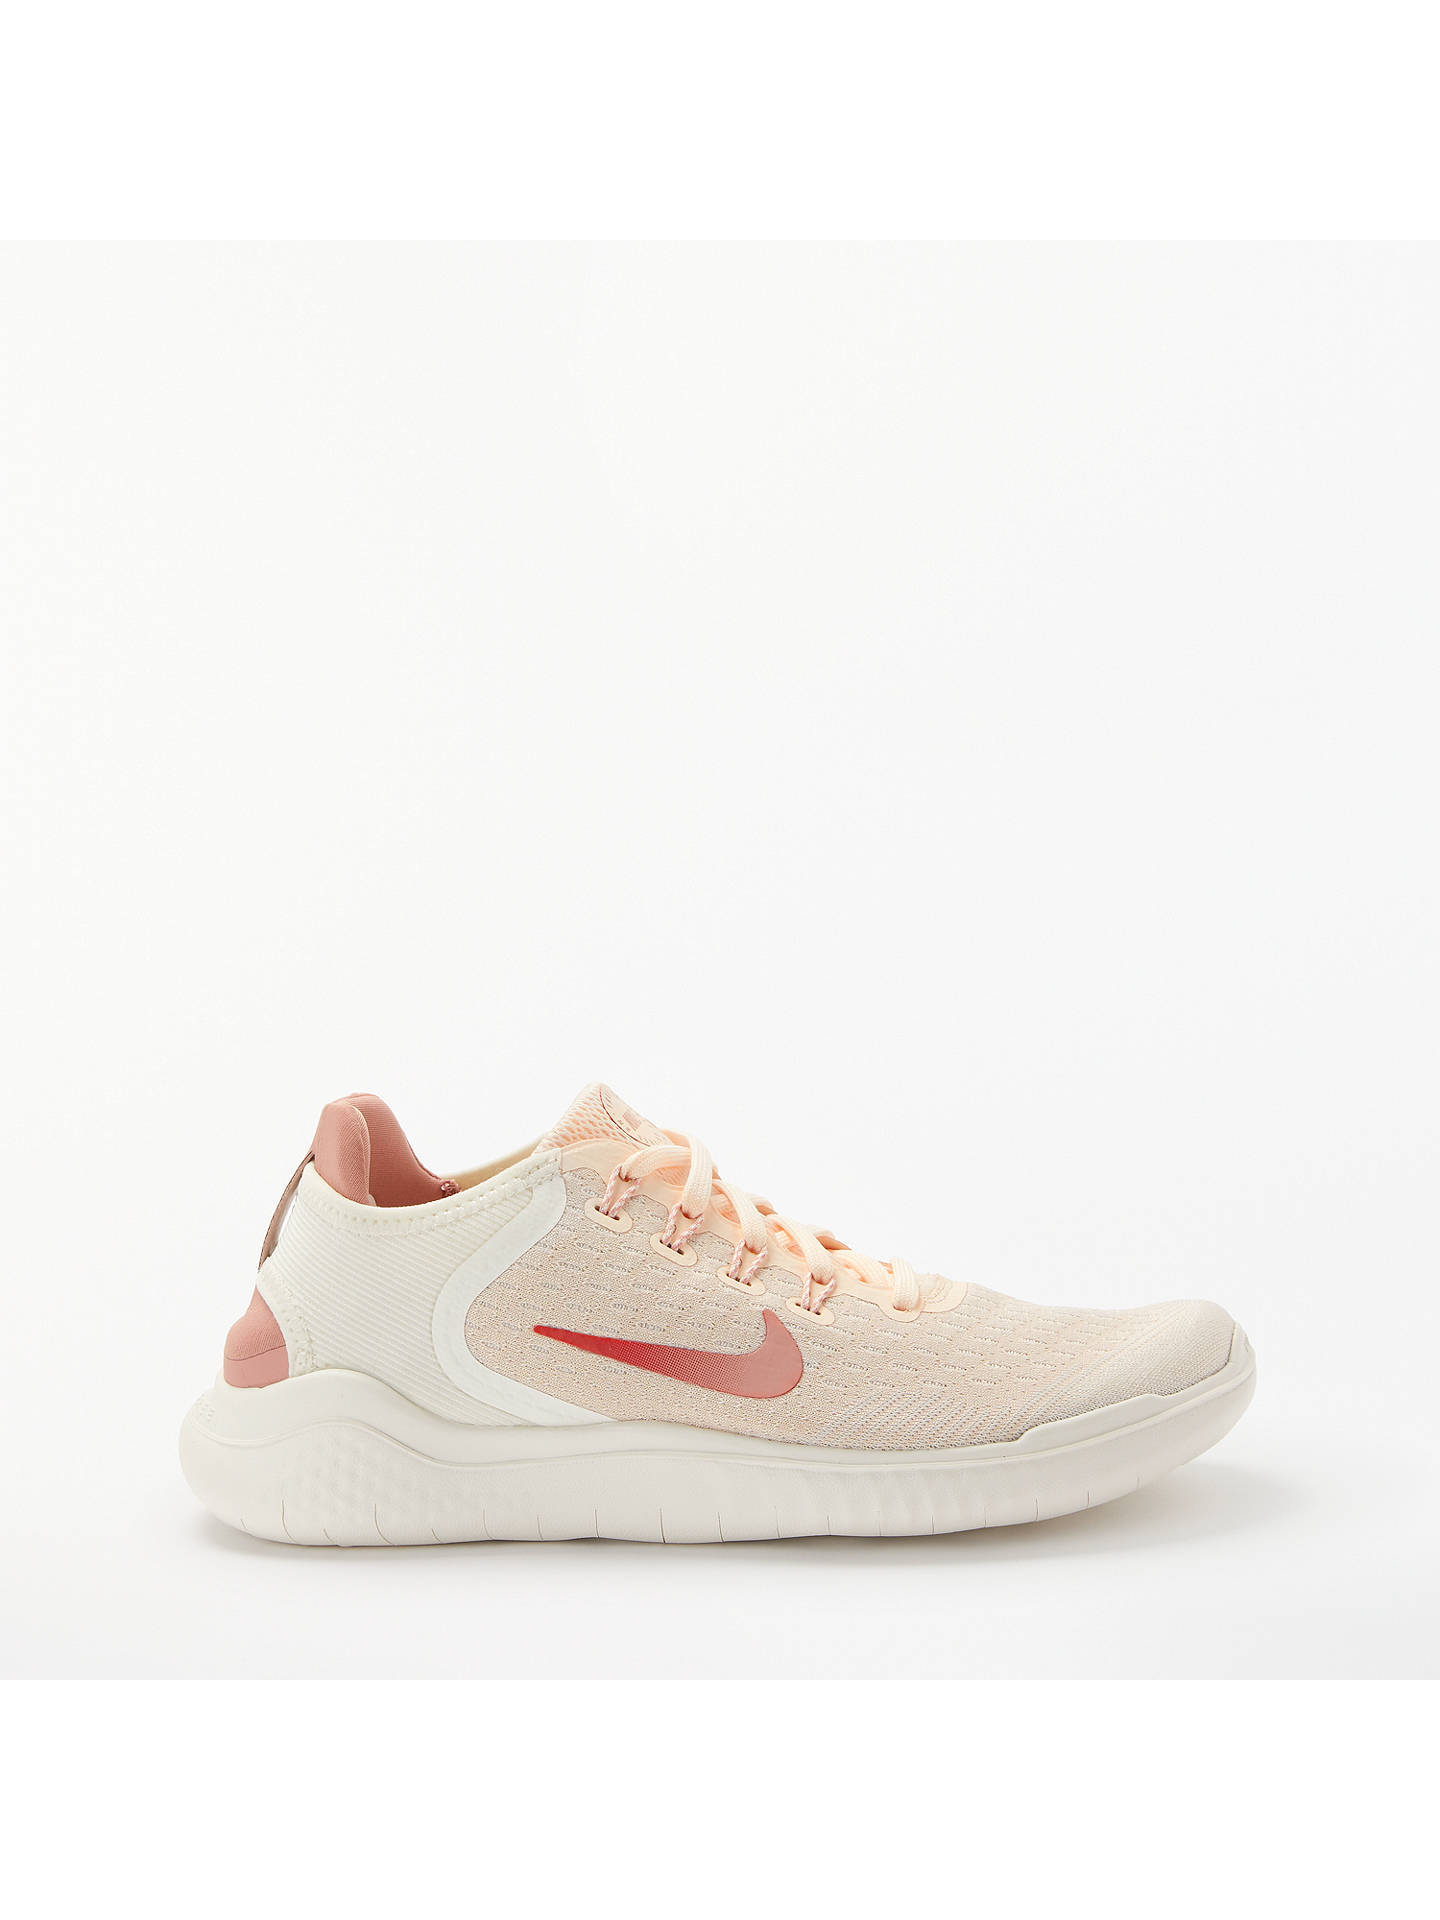 03e4b590911 Buy Nike Free RN 2018 Women s Running Shoes